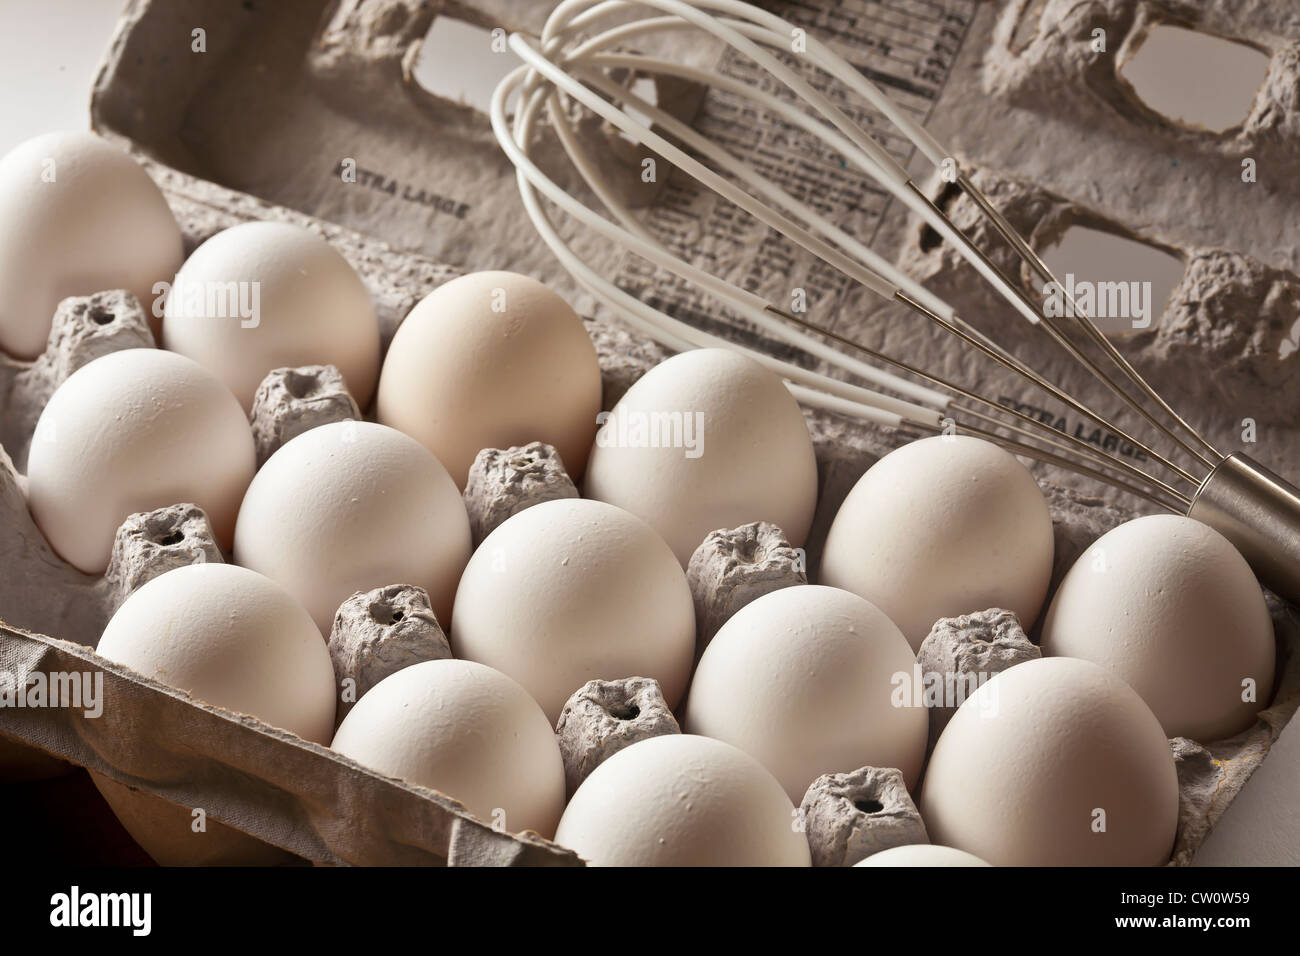 eggs in carton with stainless-steel wisk - Stock Image